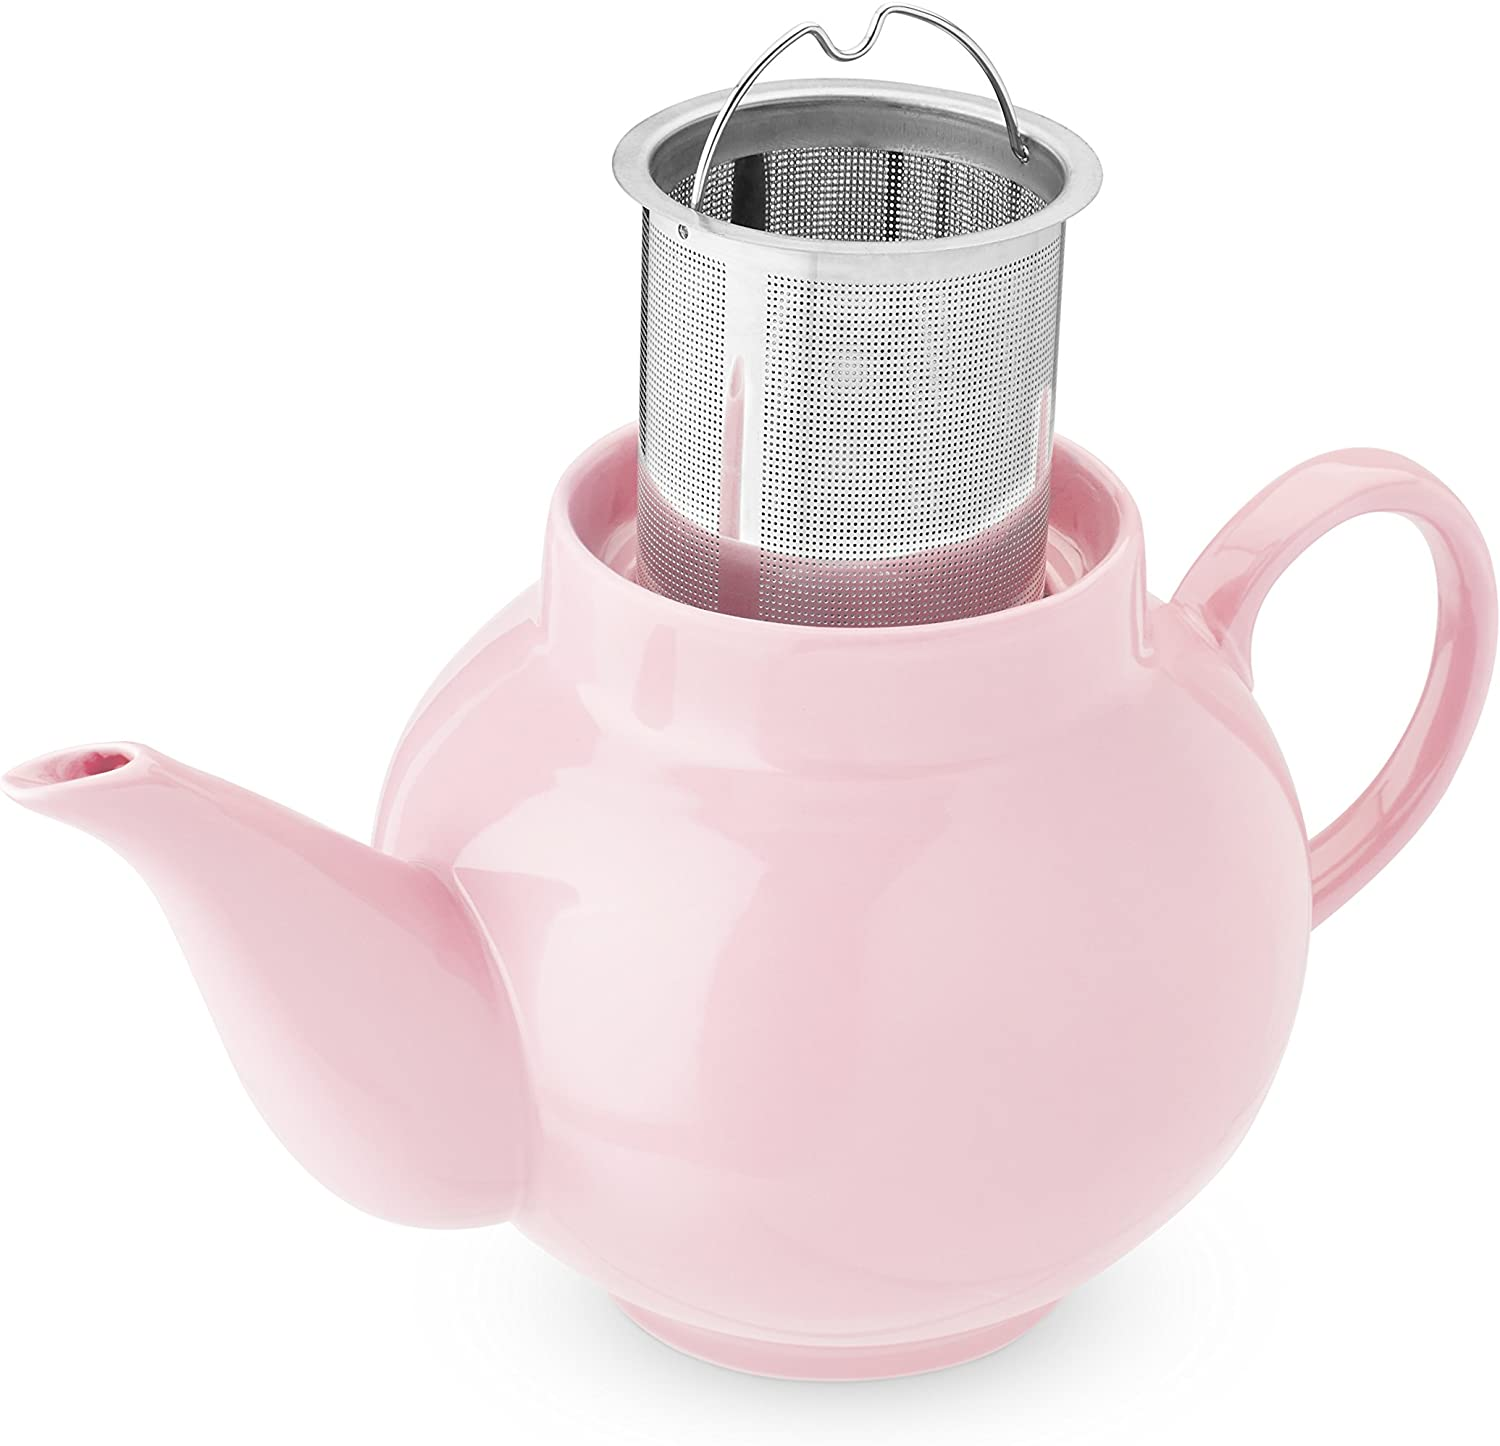 Pinky Up Regan Light Pink Ceramic Teapot & Infuser, One Size, Multi Colored